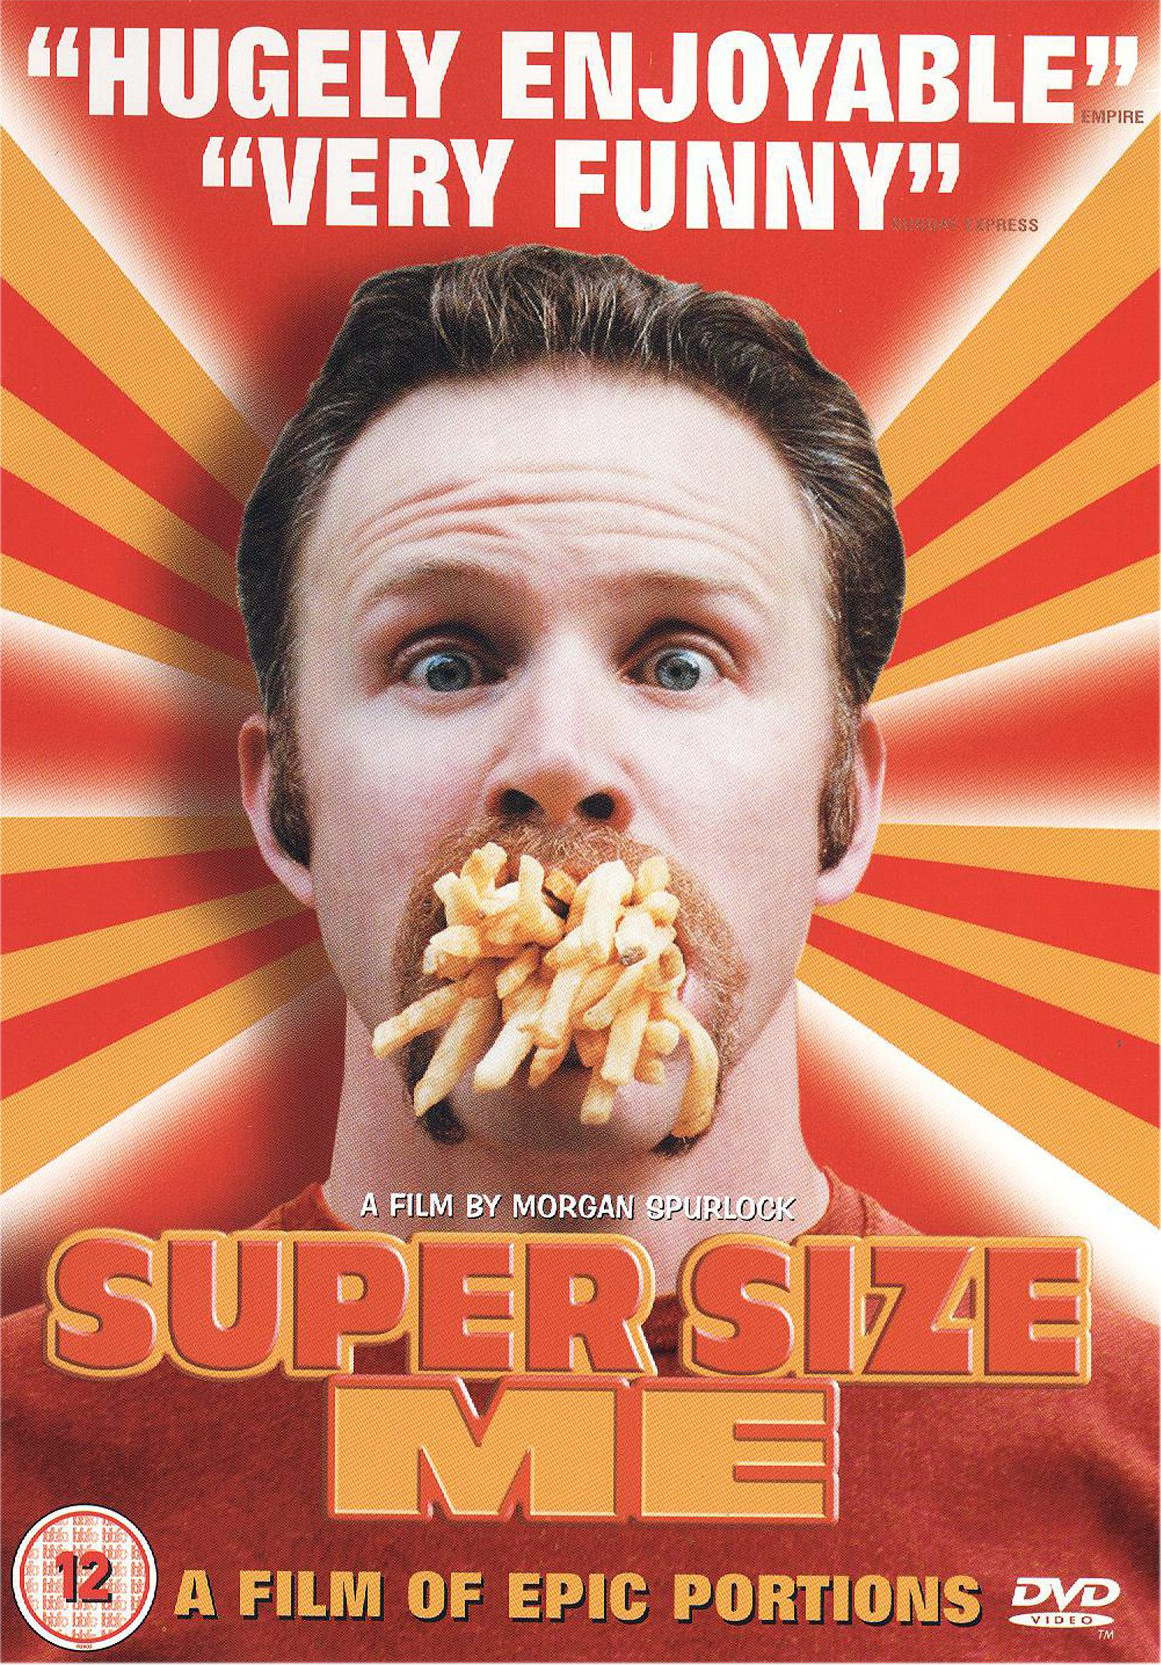 Documentary Super Size Me Movie Morgan Spurlock 04